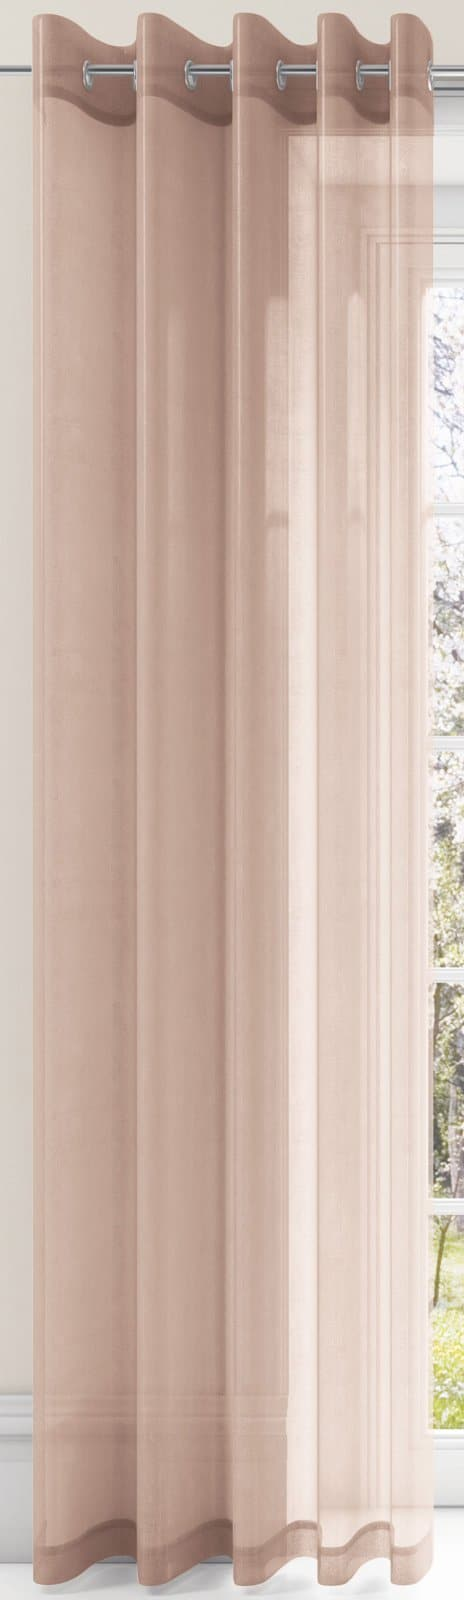 Plain Eyelet Voile Curtain Panels Coffee -  - Ideal Textiles